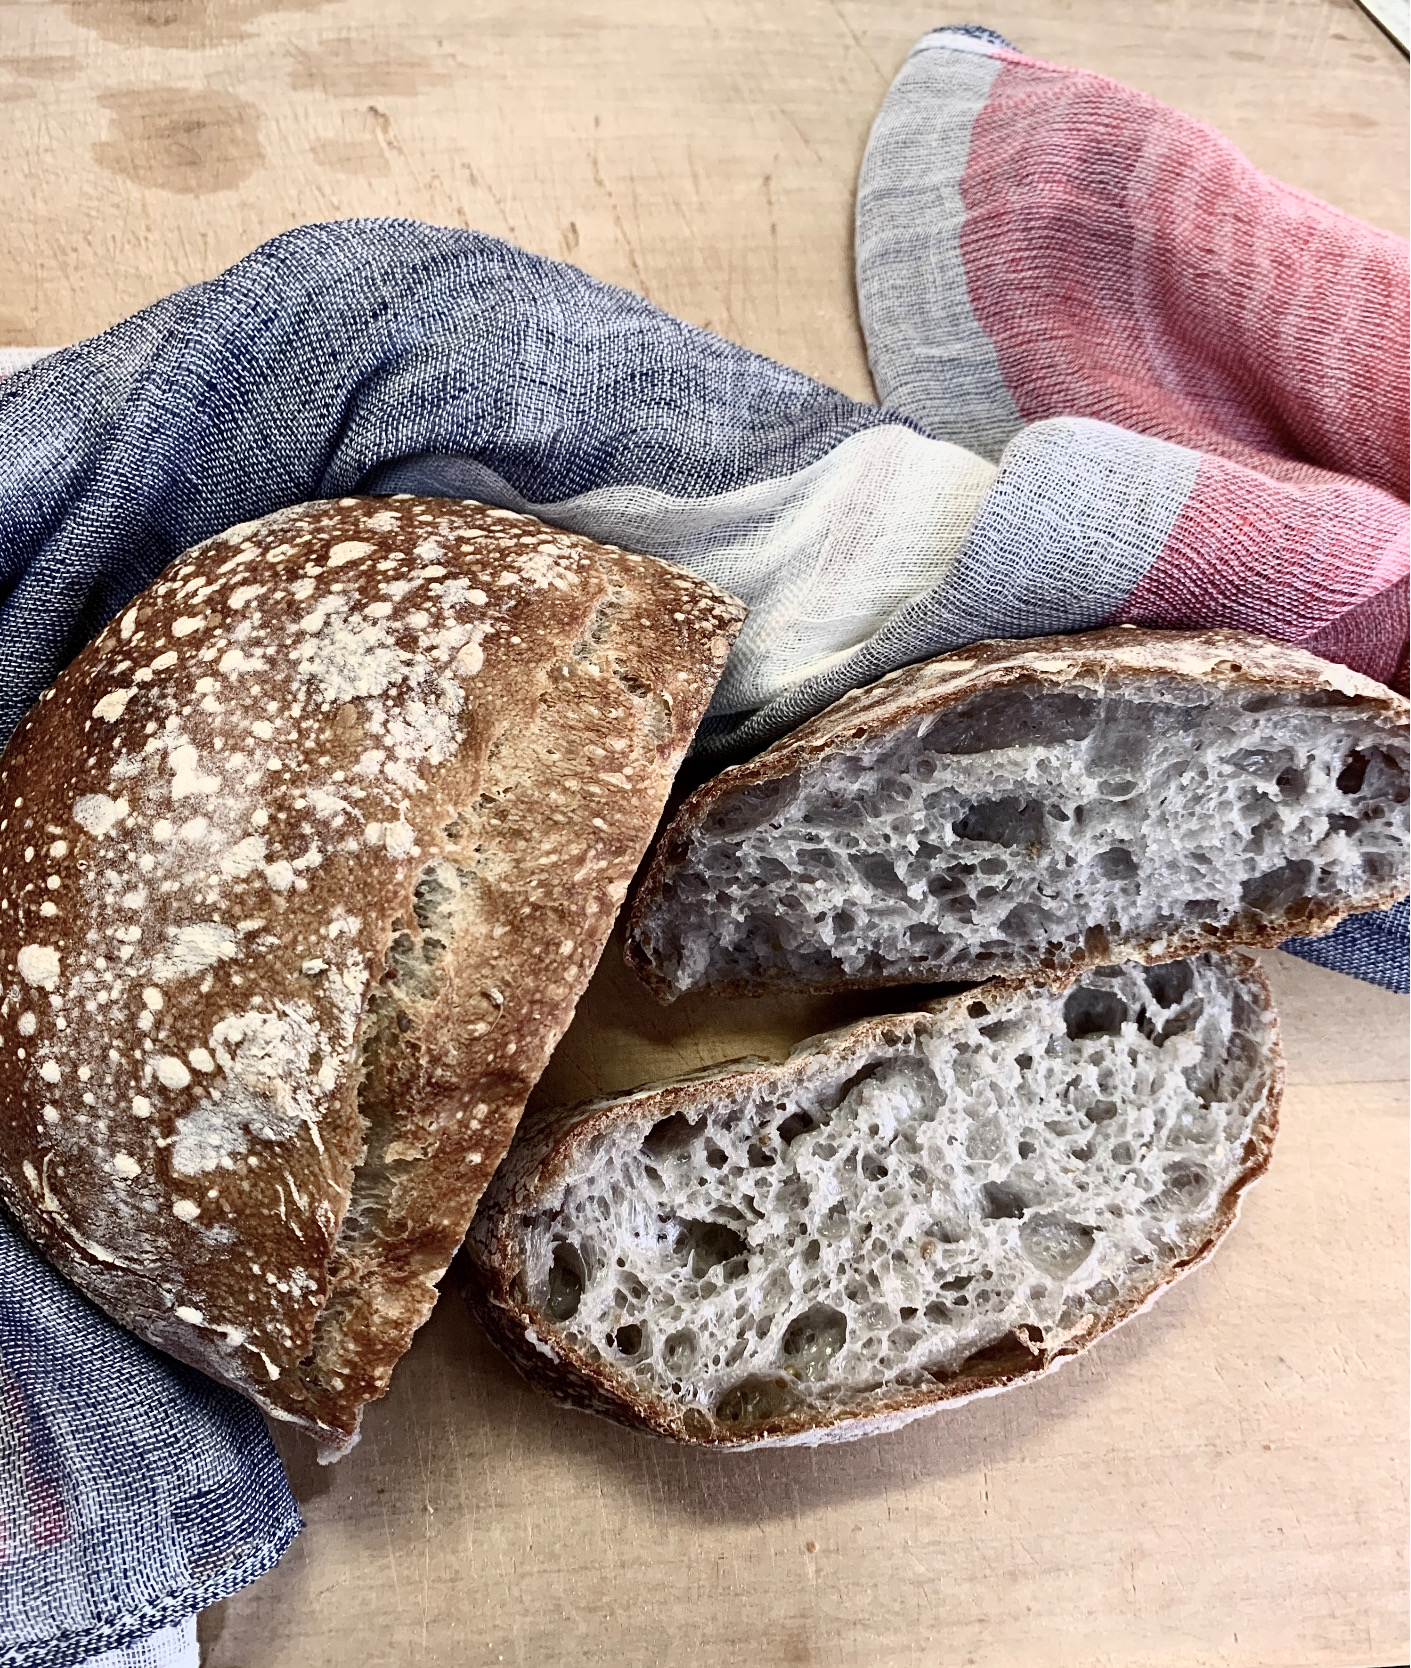 Anise Seed & Butterfly Pea Flower Rustic Sourdough Bread